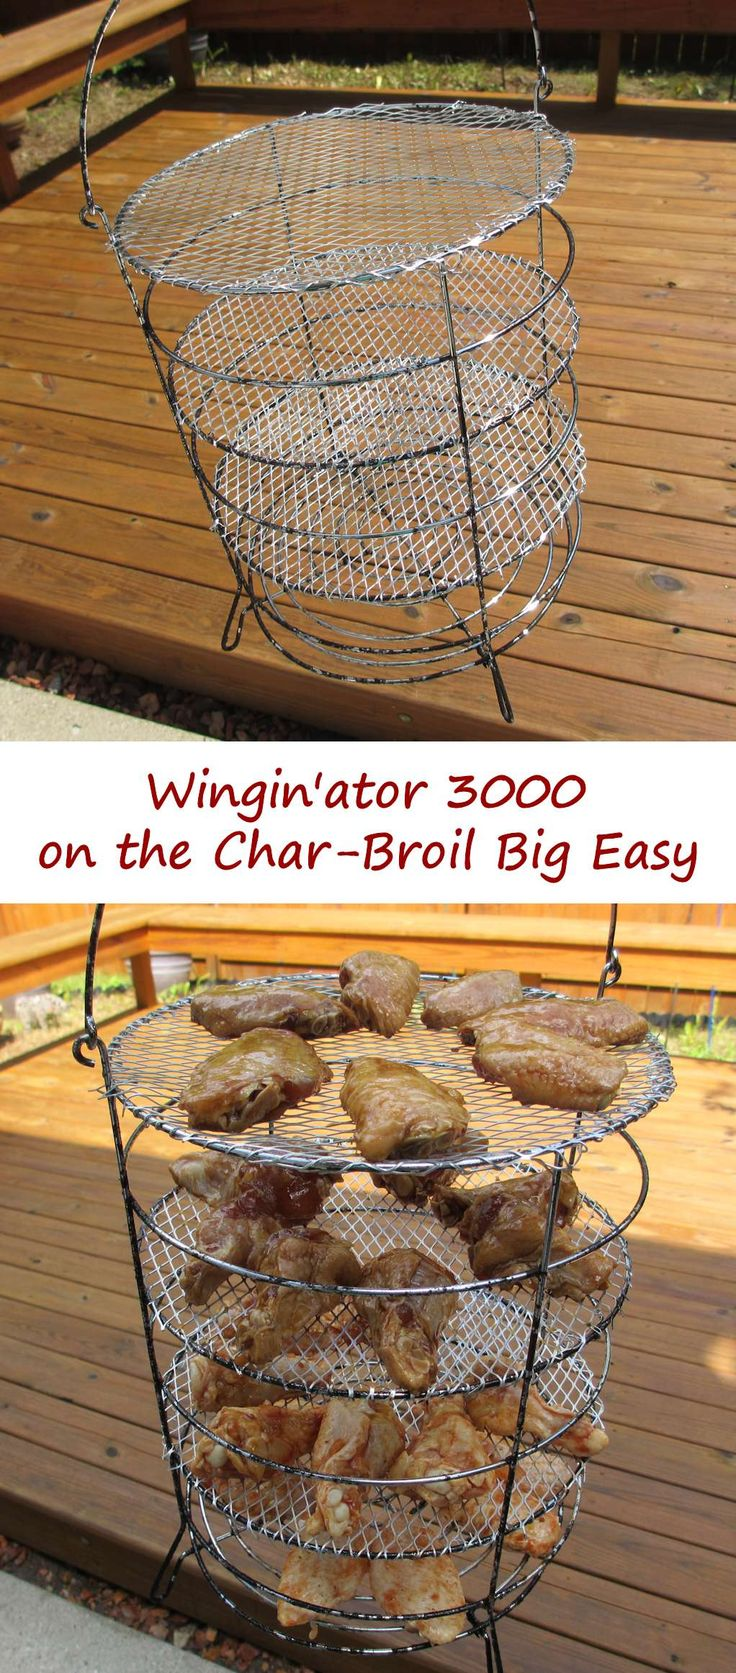 Wingin'ator 3000 on the Char-Broil Big Easy